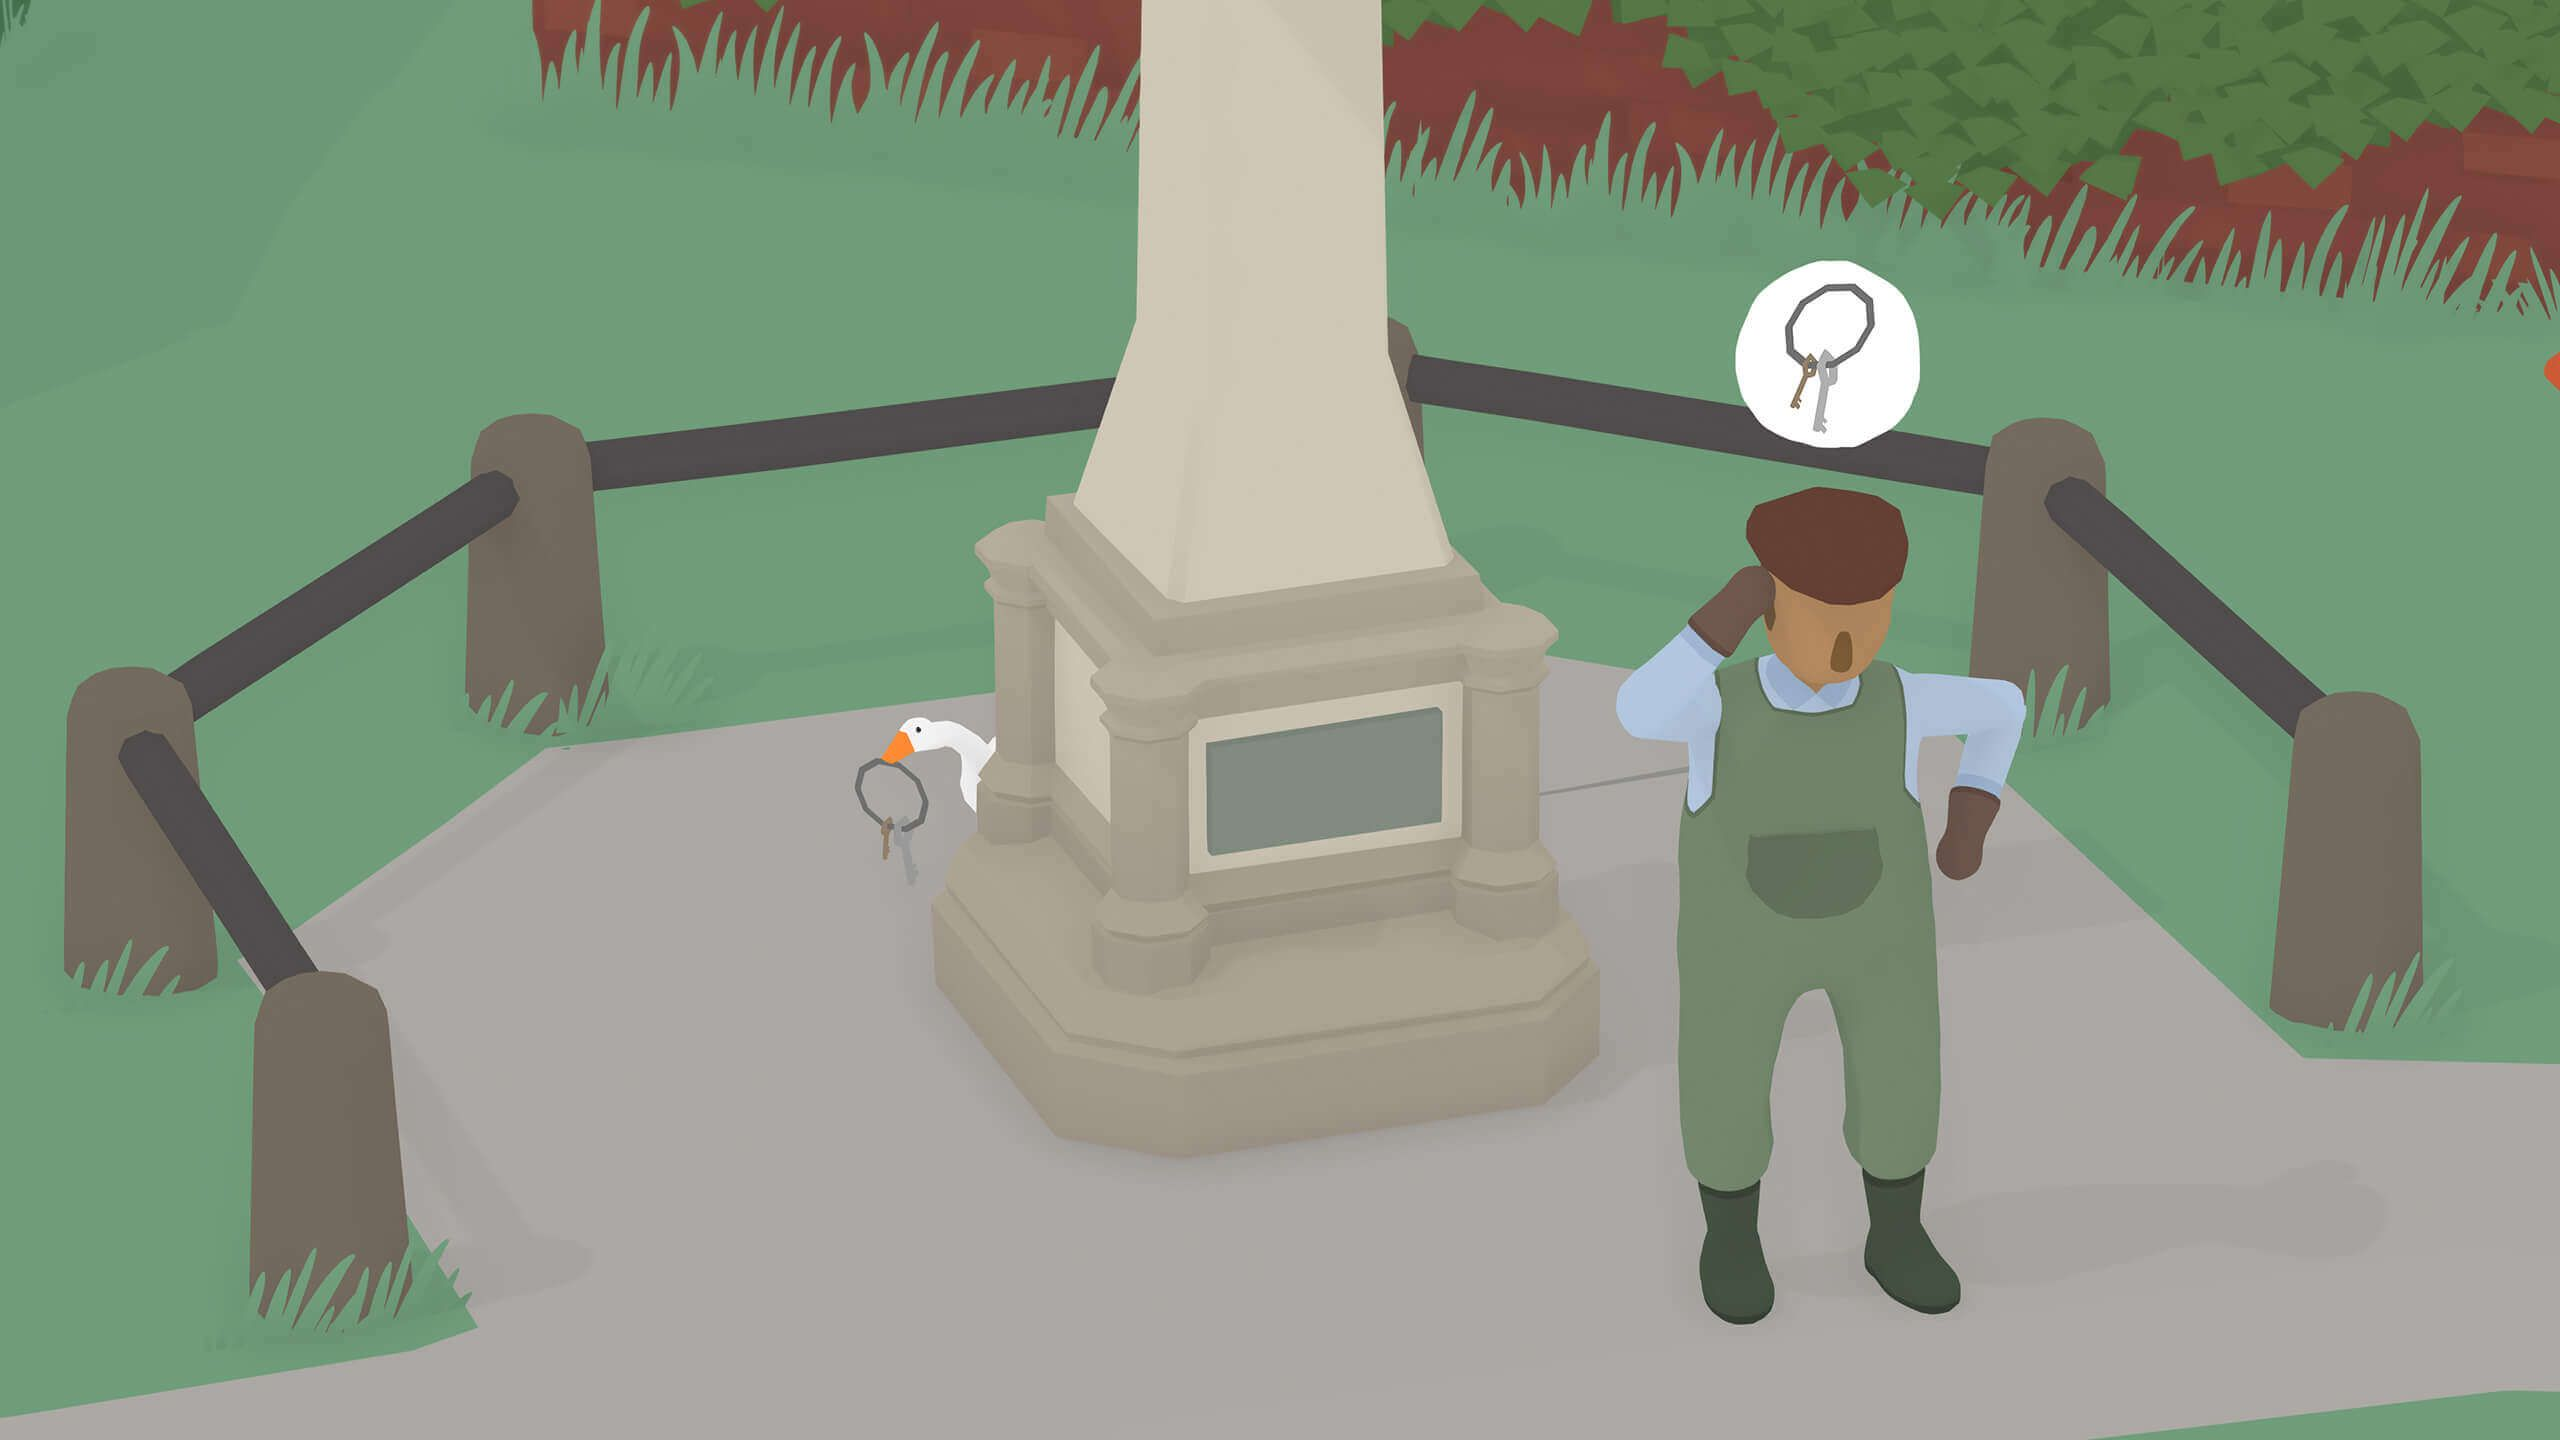 Untitled Goose Game Review: The Chaos We Need Right Now